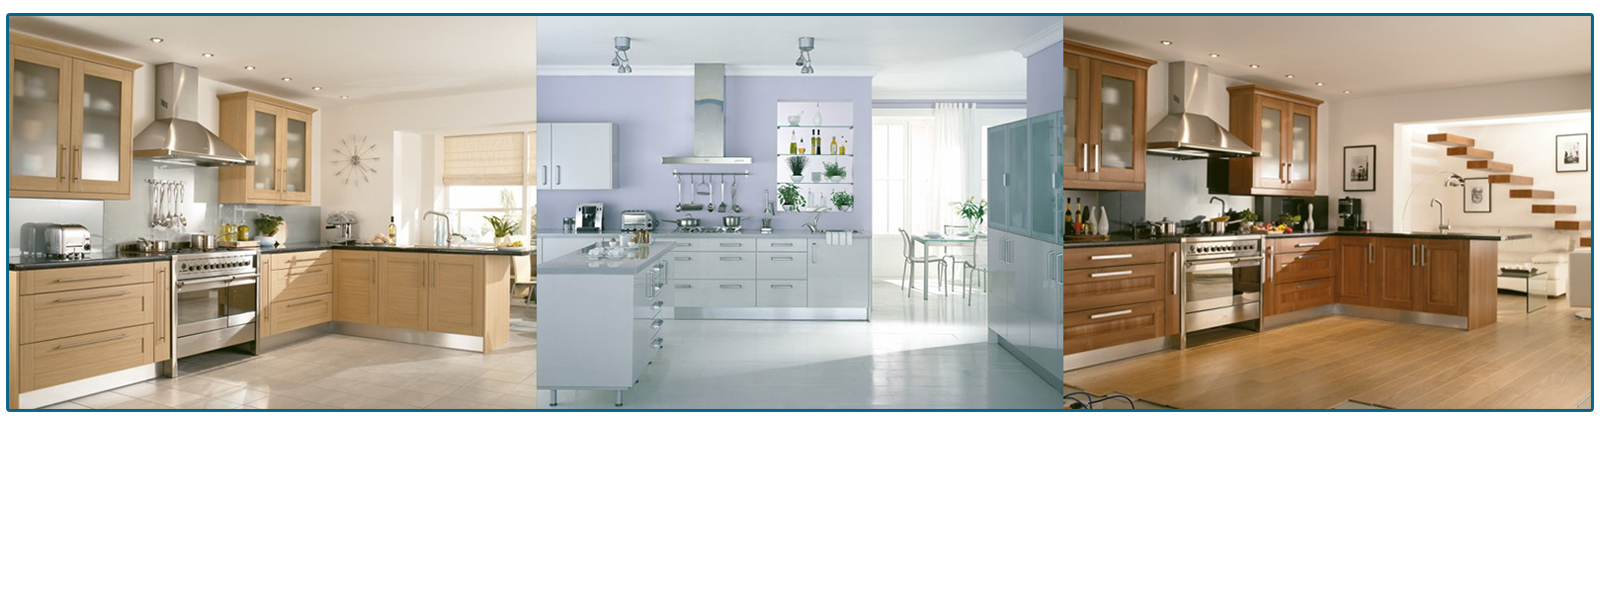 Doncaster Kitchens And Bedrooms By Dbi Limited